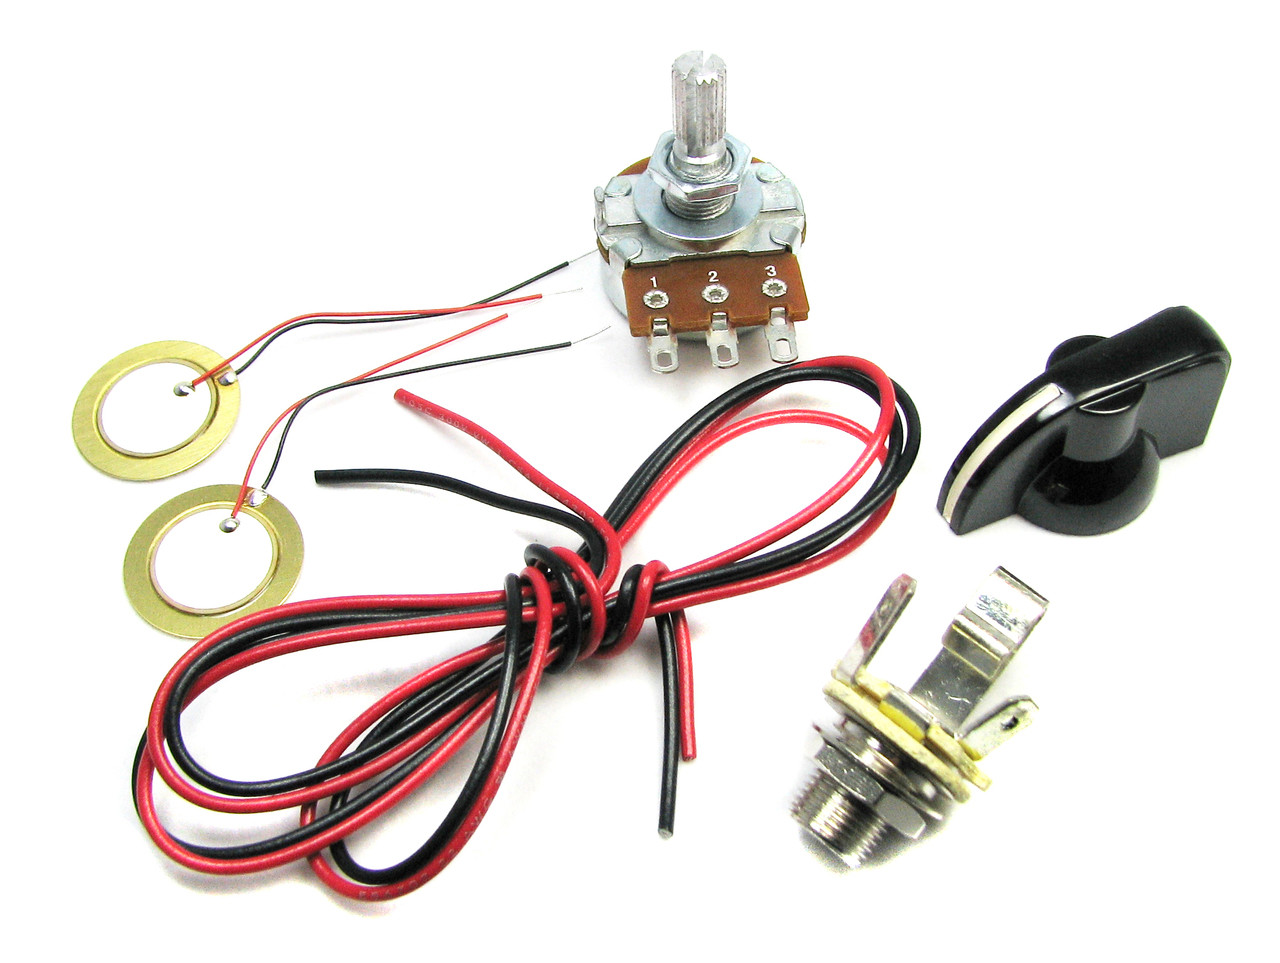 hight resolution of basic piezo pickup kit for cigar box guitar instructions included